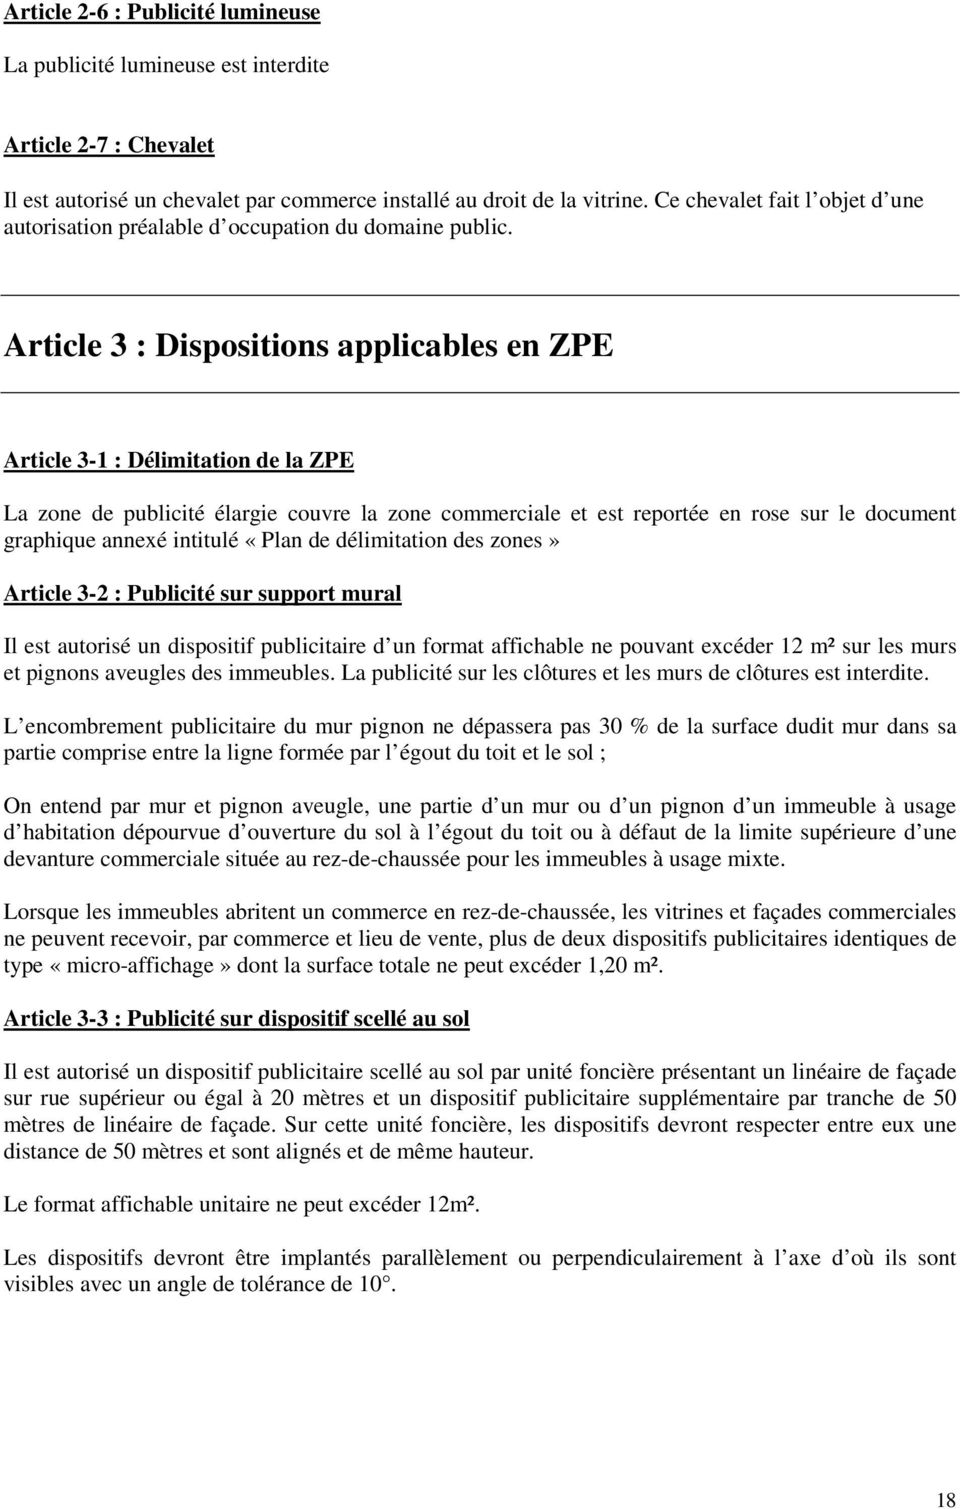 Article 3 : Dispositions applicables en ZPE Article 3-1 : Délimitation de la ZPE La zone de publicité élargie couvre la zone commerciale et est reportée en rose sur le document graphique annexé